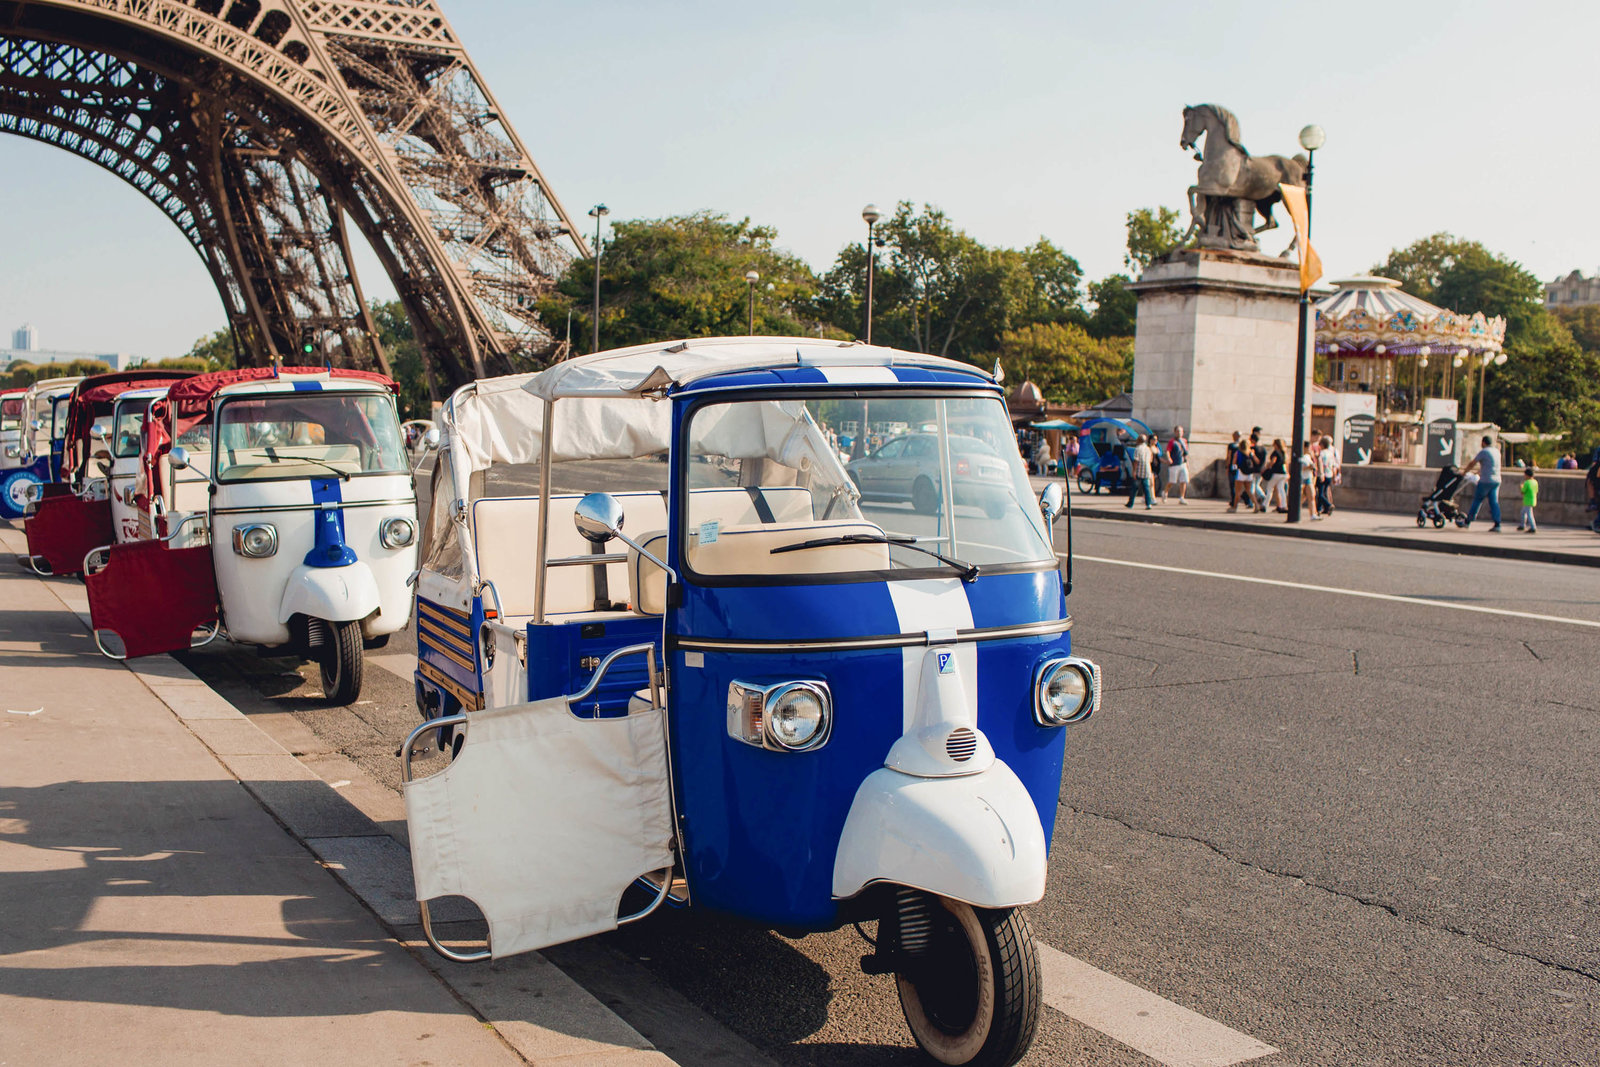 scooter-paris-france-travel-destination-wedding-kate-timbers-photography-1737